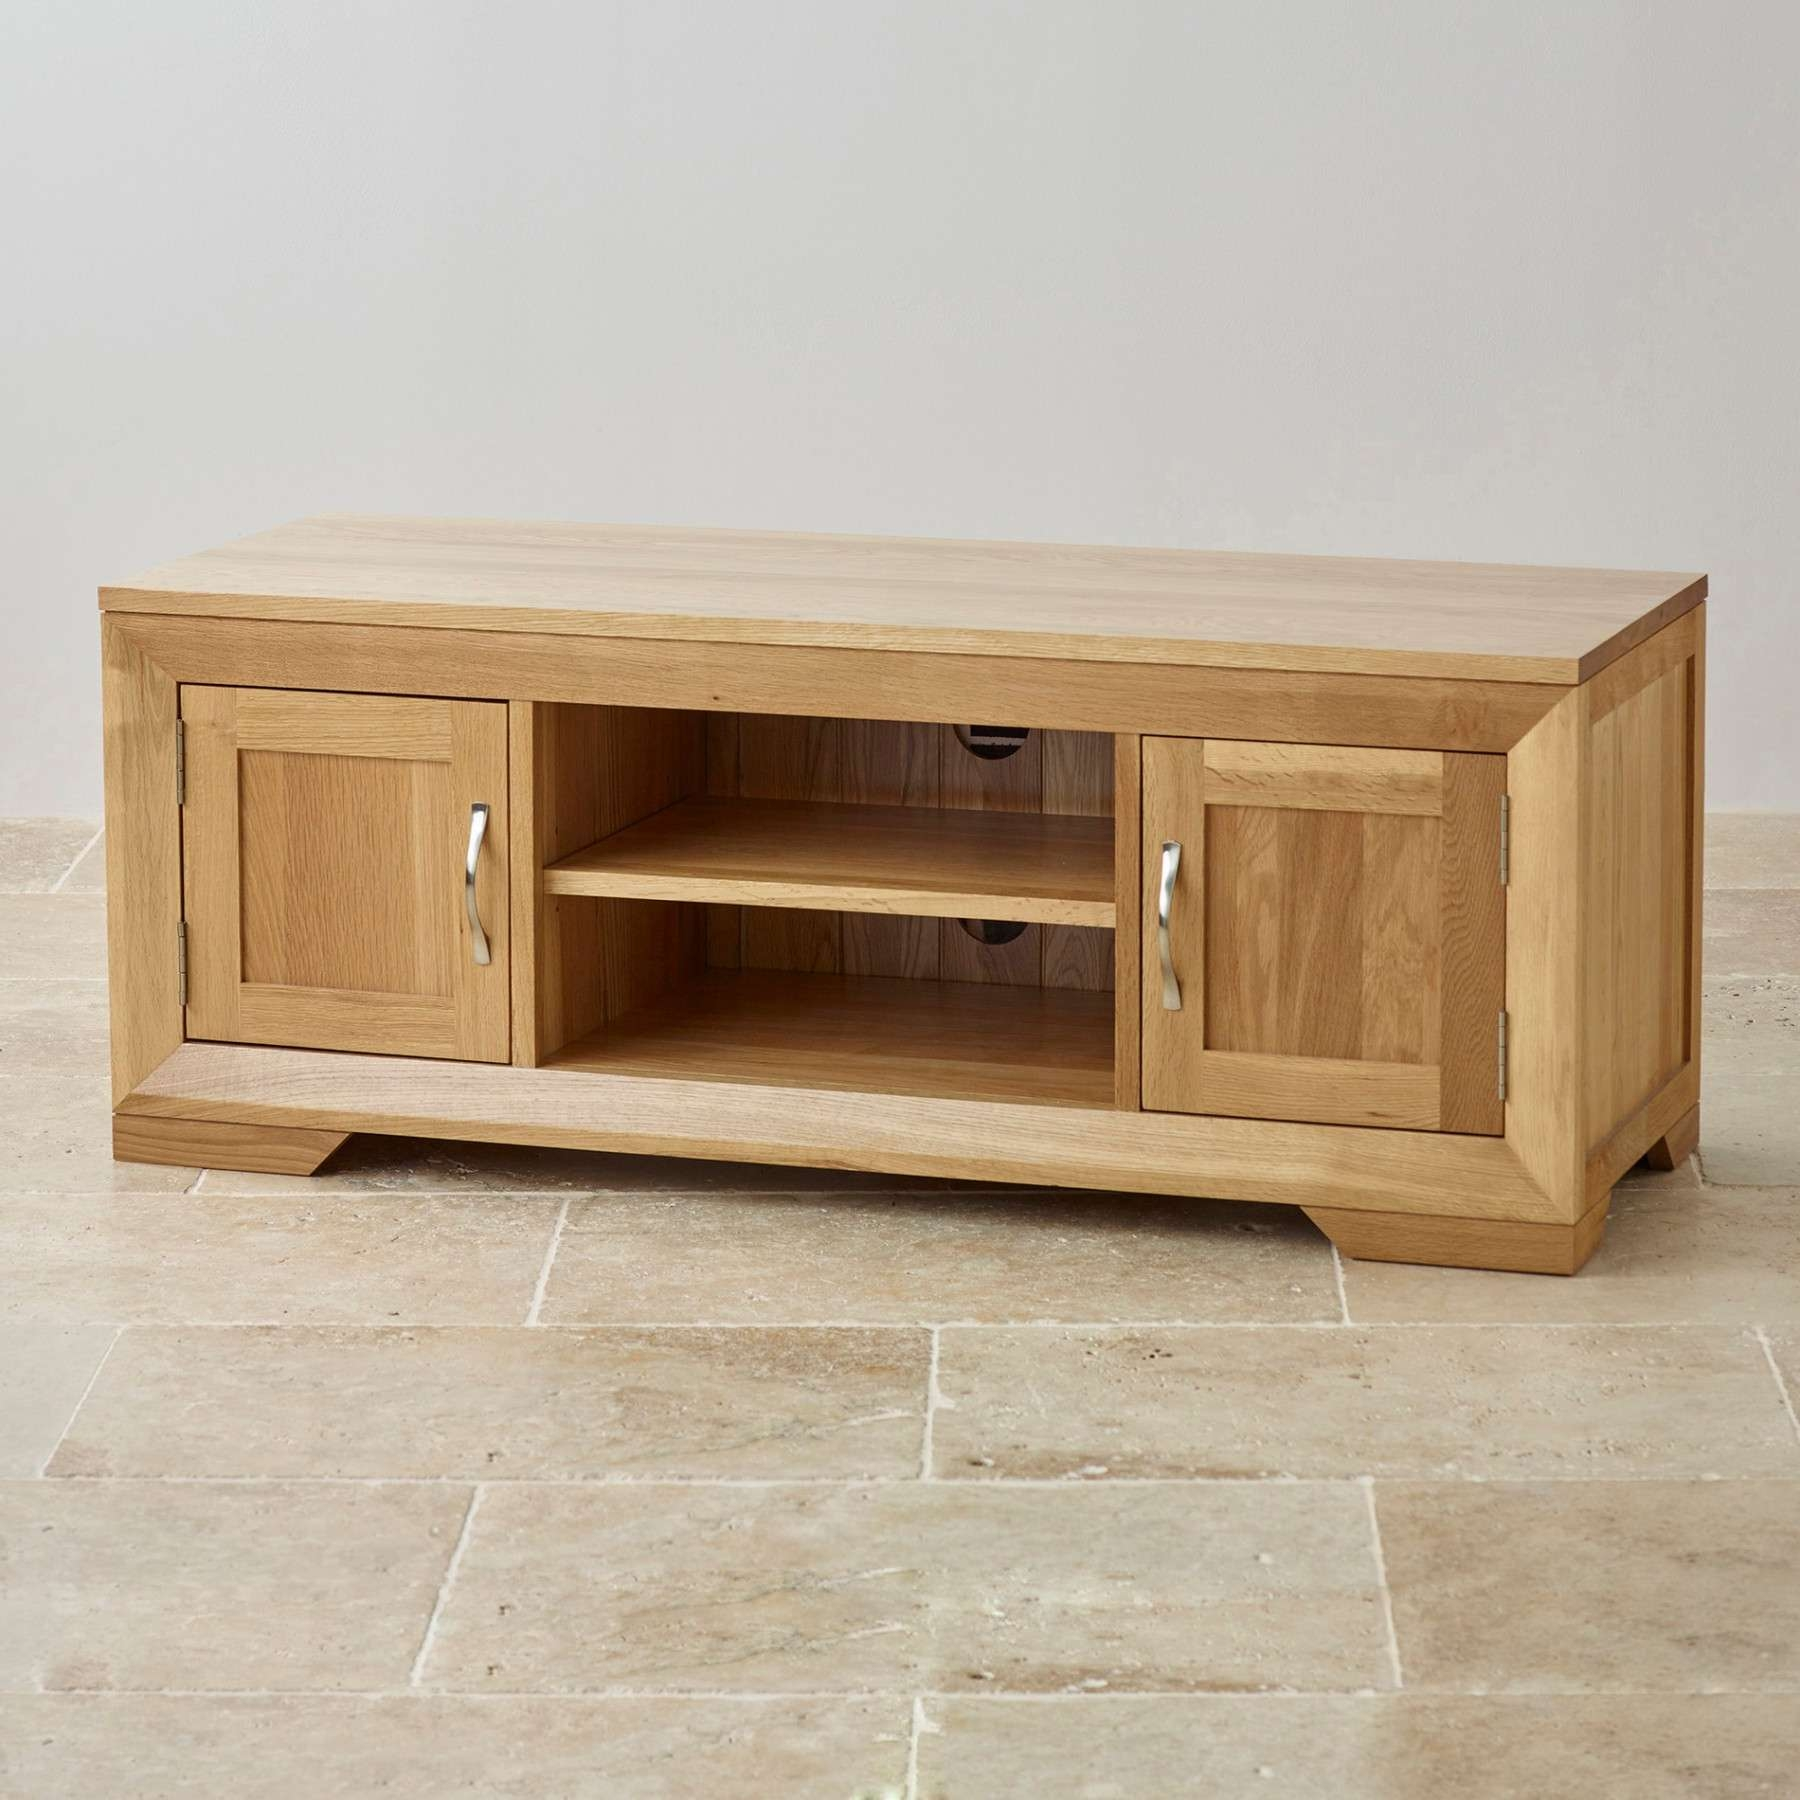 Tv Stands | Oak, Mango And Painted | Oak Furniture Land Within Solid Oak Tv Stands (View 15 of 15)